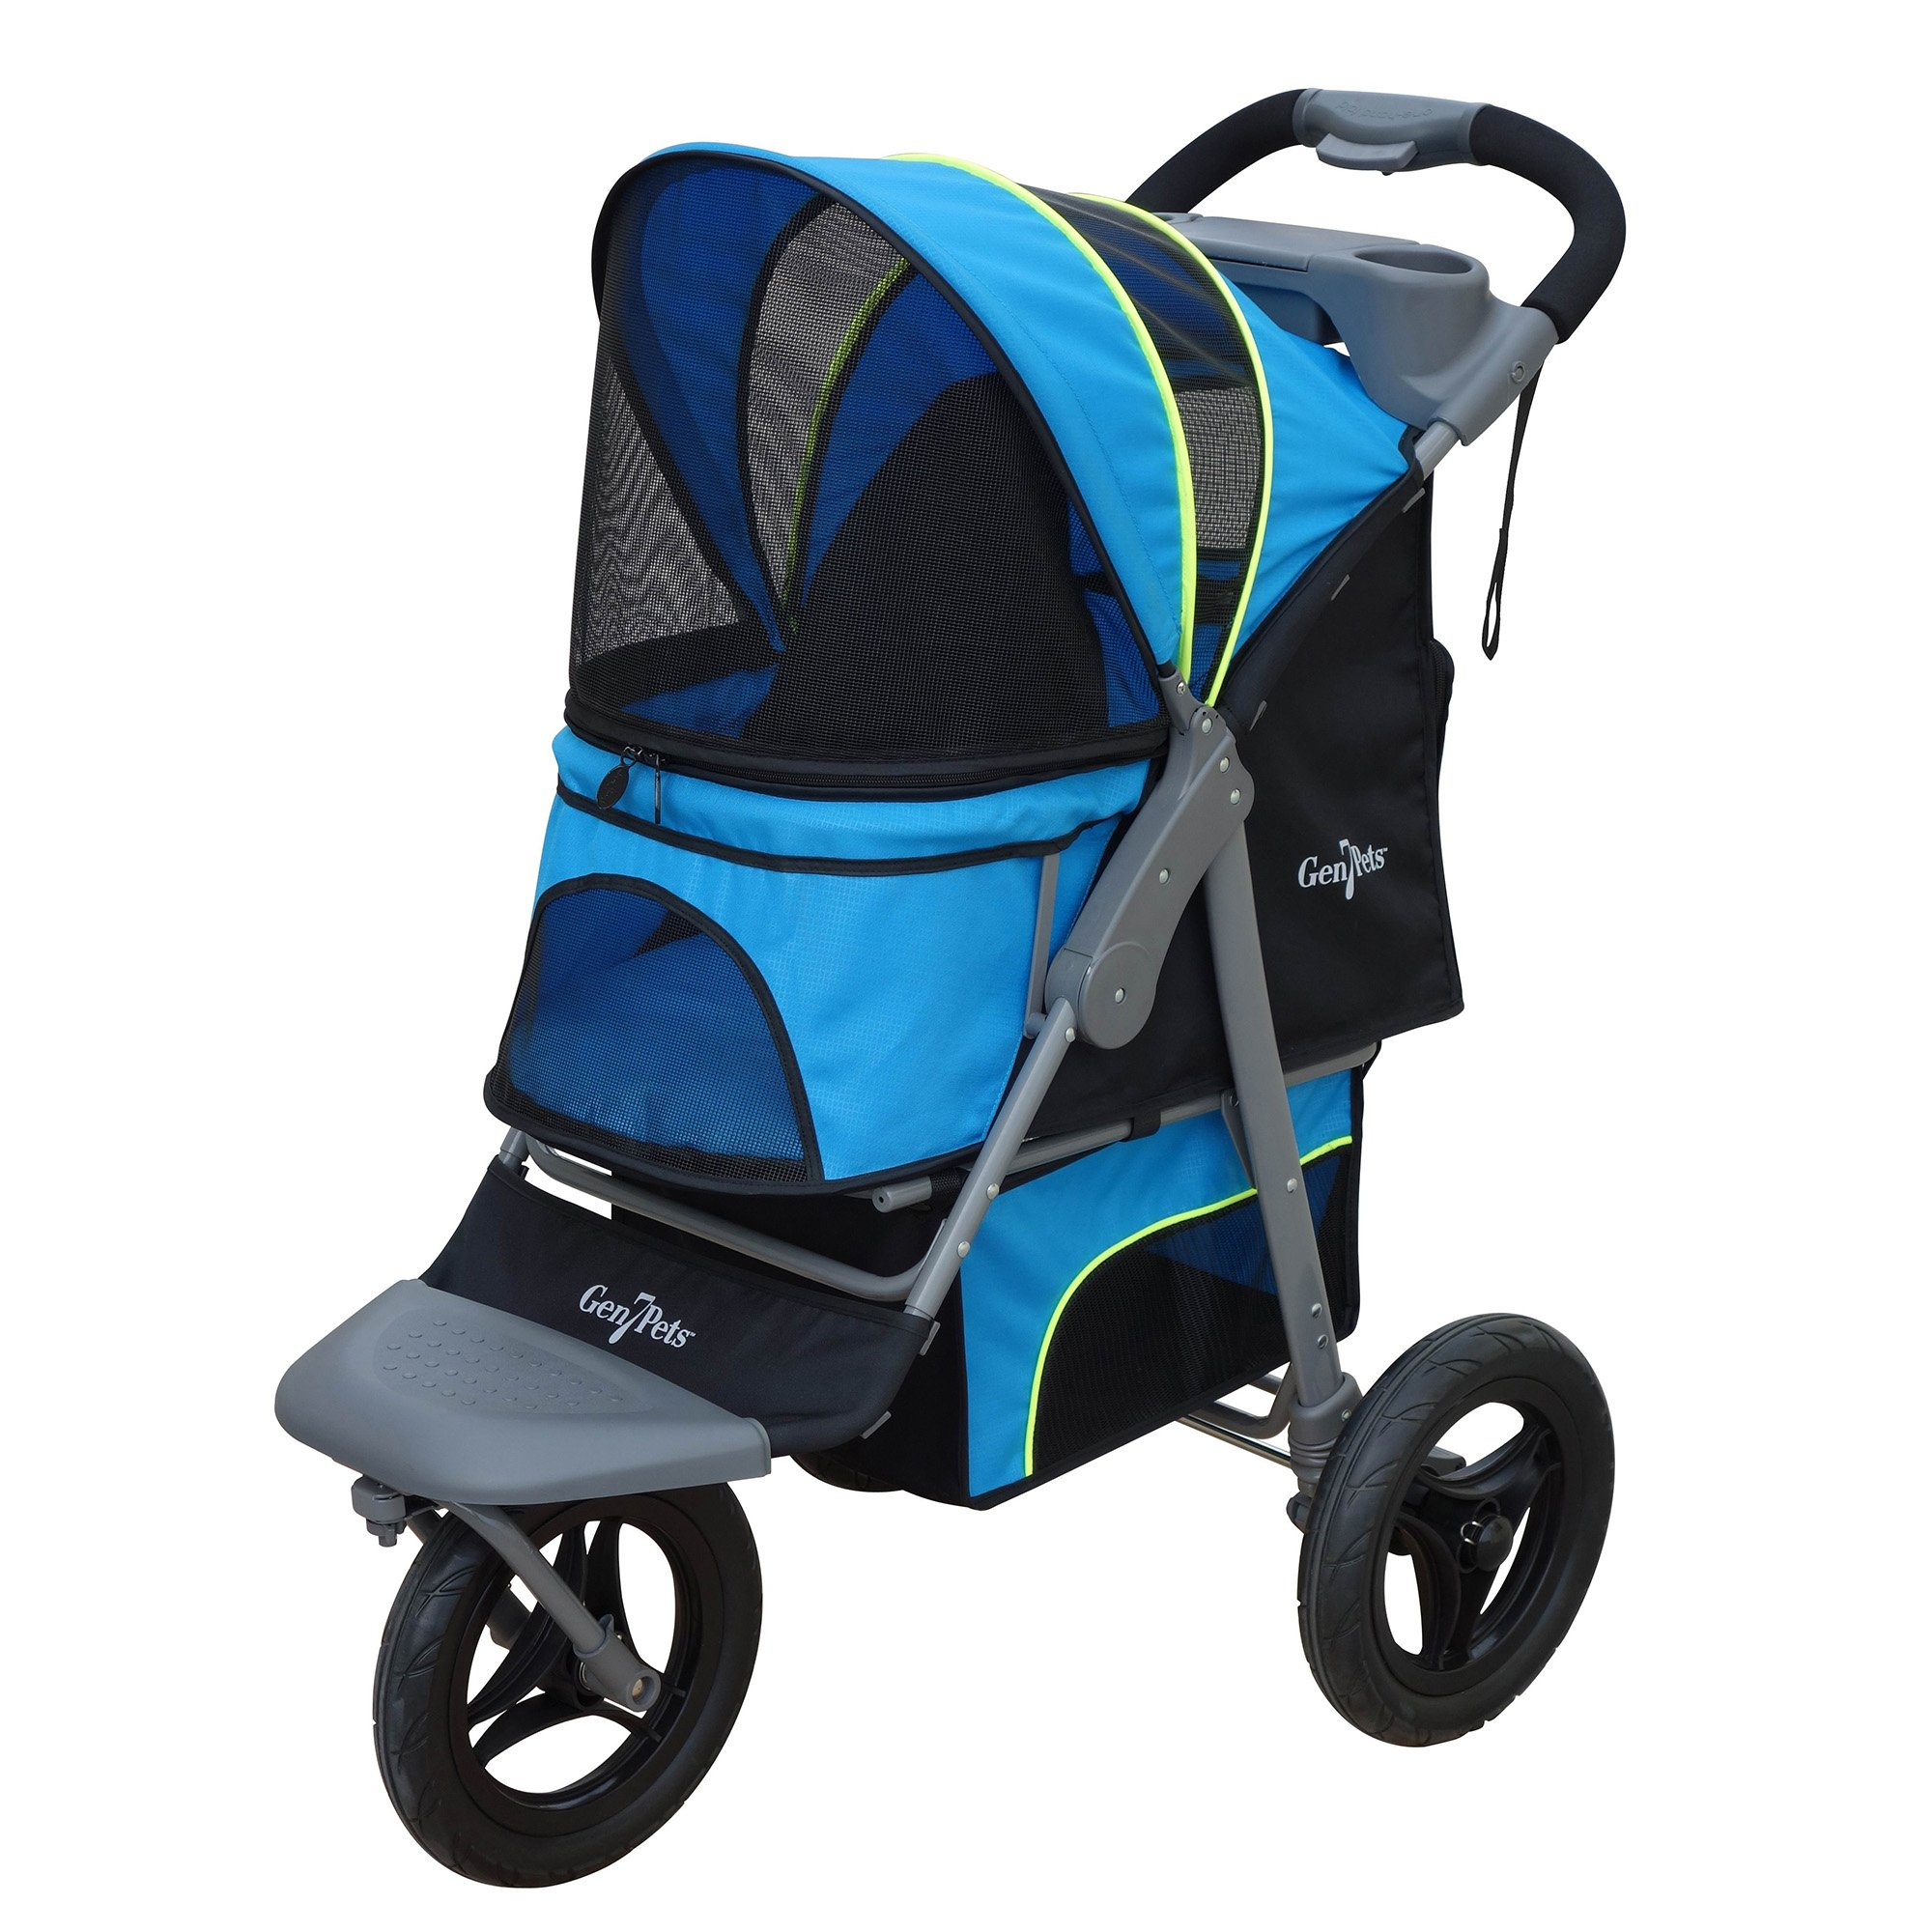 Gen7 Pet Jogger Stroller for Dogs and Cats - All Terrain, Lightweight, Portable and Comfortable for your favorite Pet by Gen7Pets